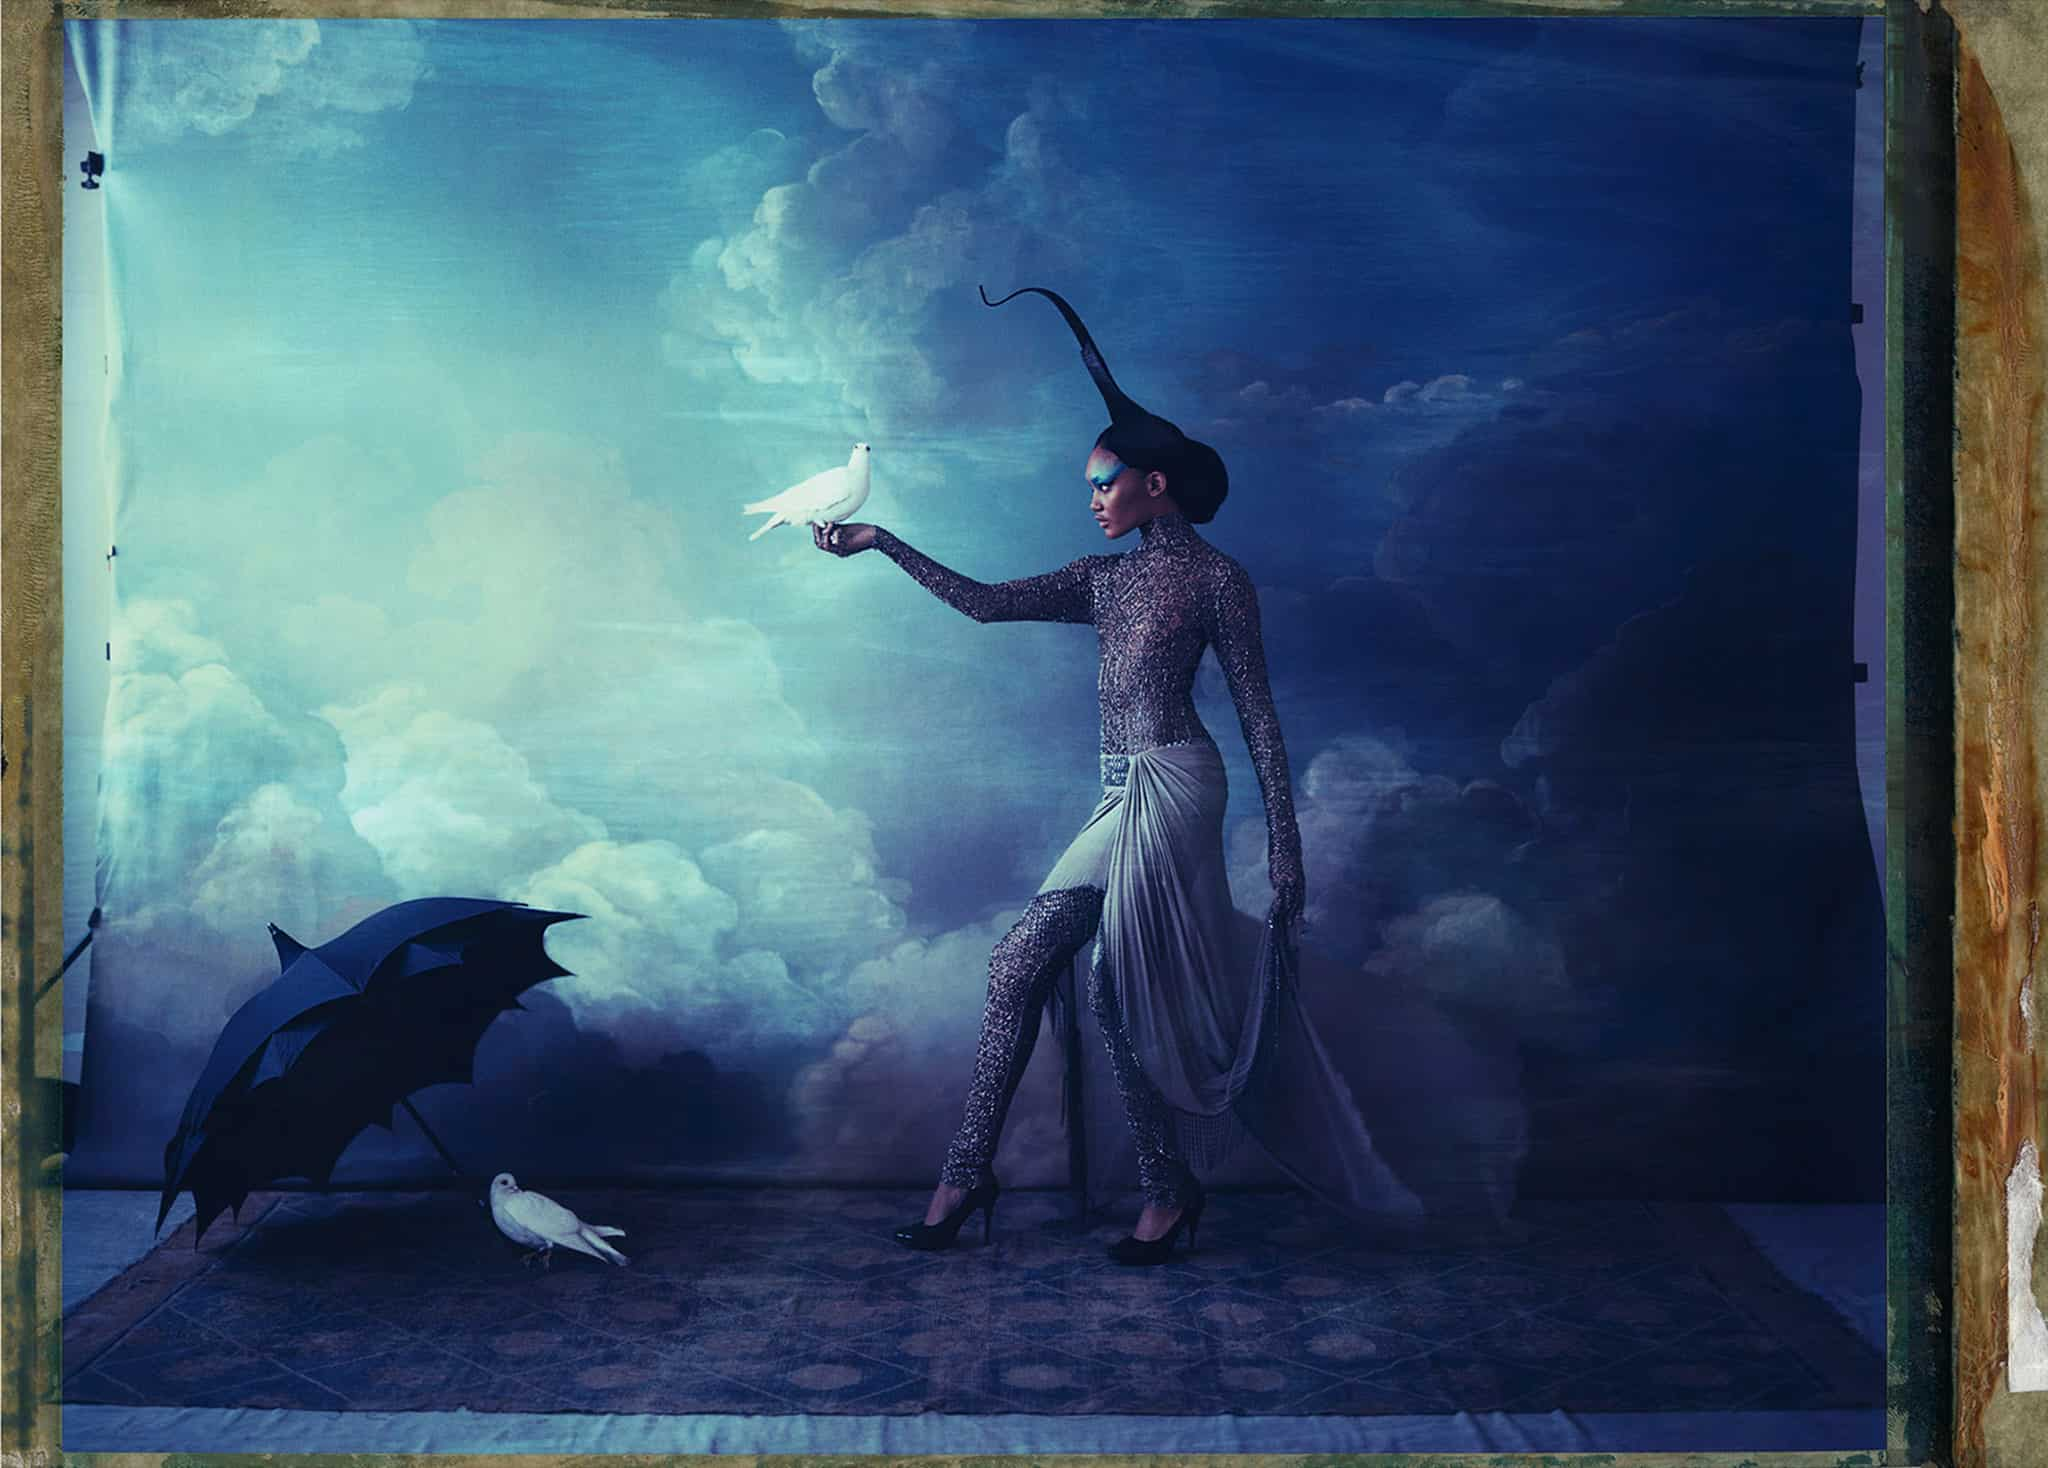 Fine art color photography of a fashion model wearing haute couture by Rami al Ali and hat by Philip Treacy, with two doves. Hand-painted backdrop of sky.